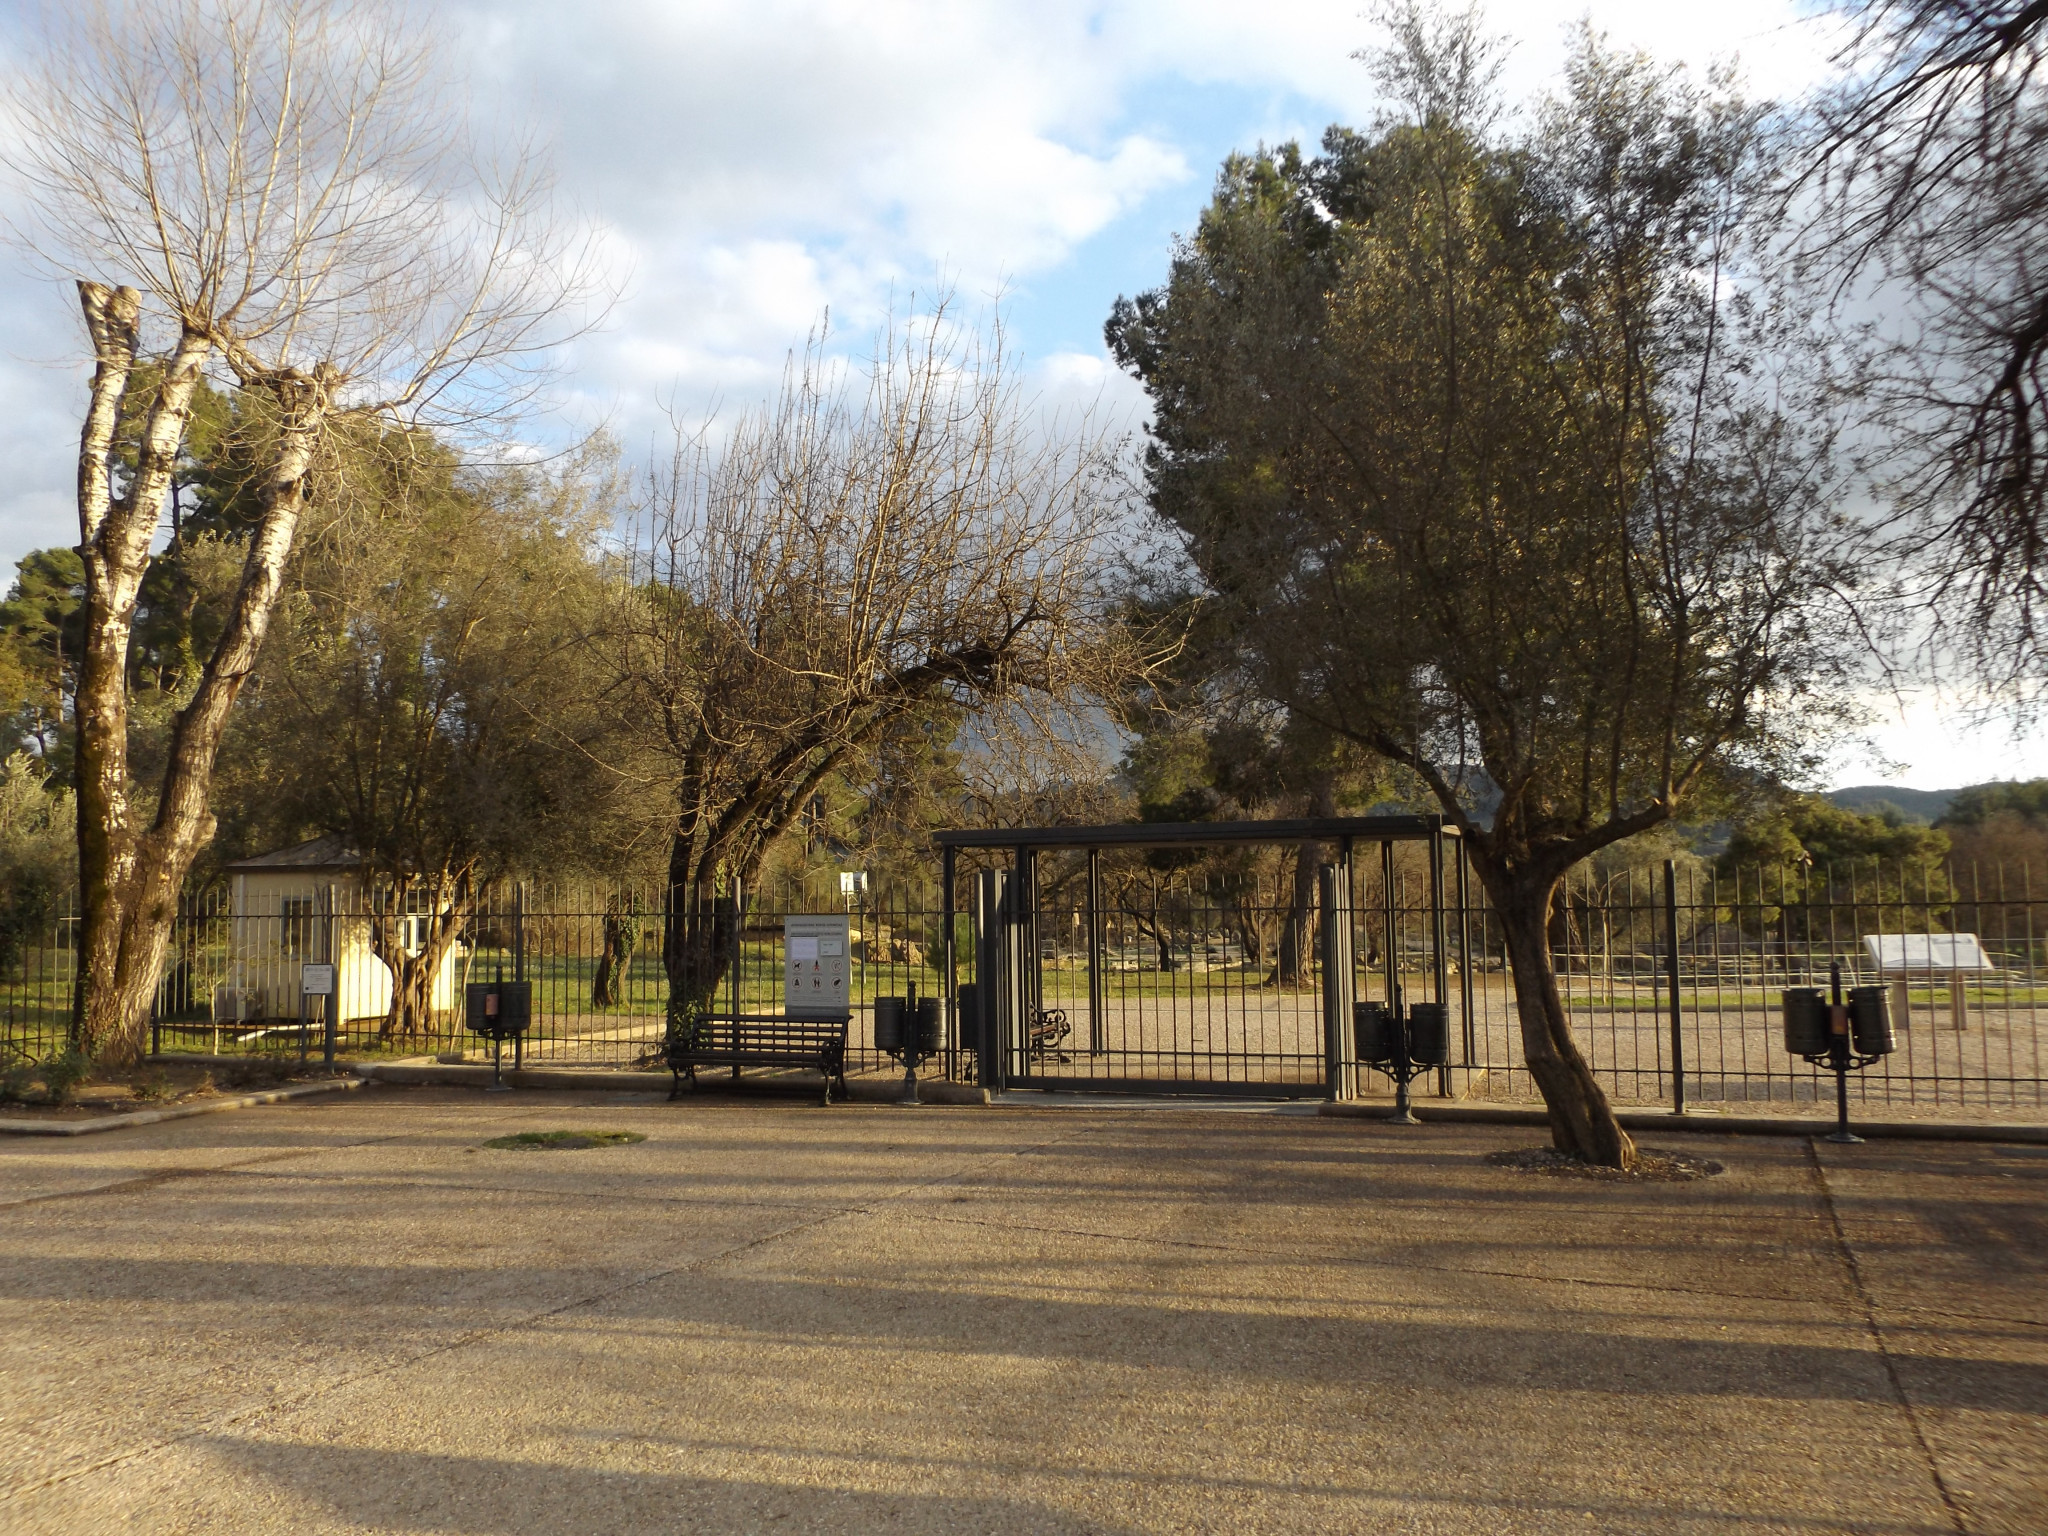 The Ancient Olympia archaeological site where the Olympic Flame lighting is due to take place was closed today ©ITG